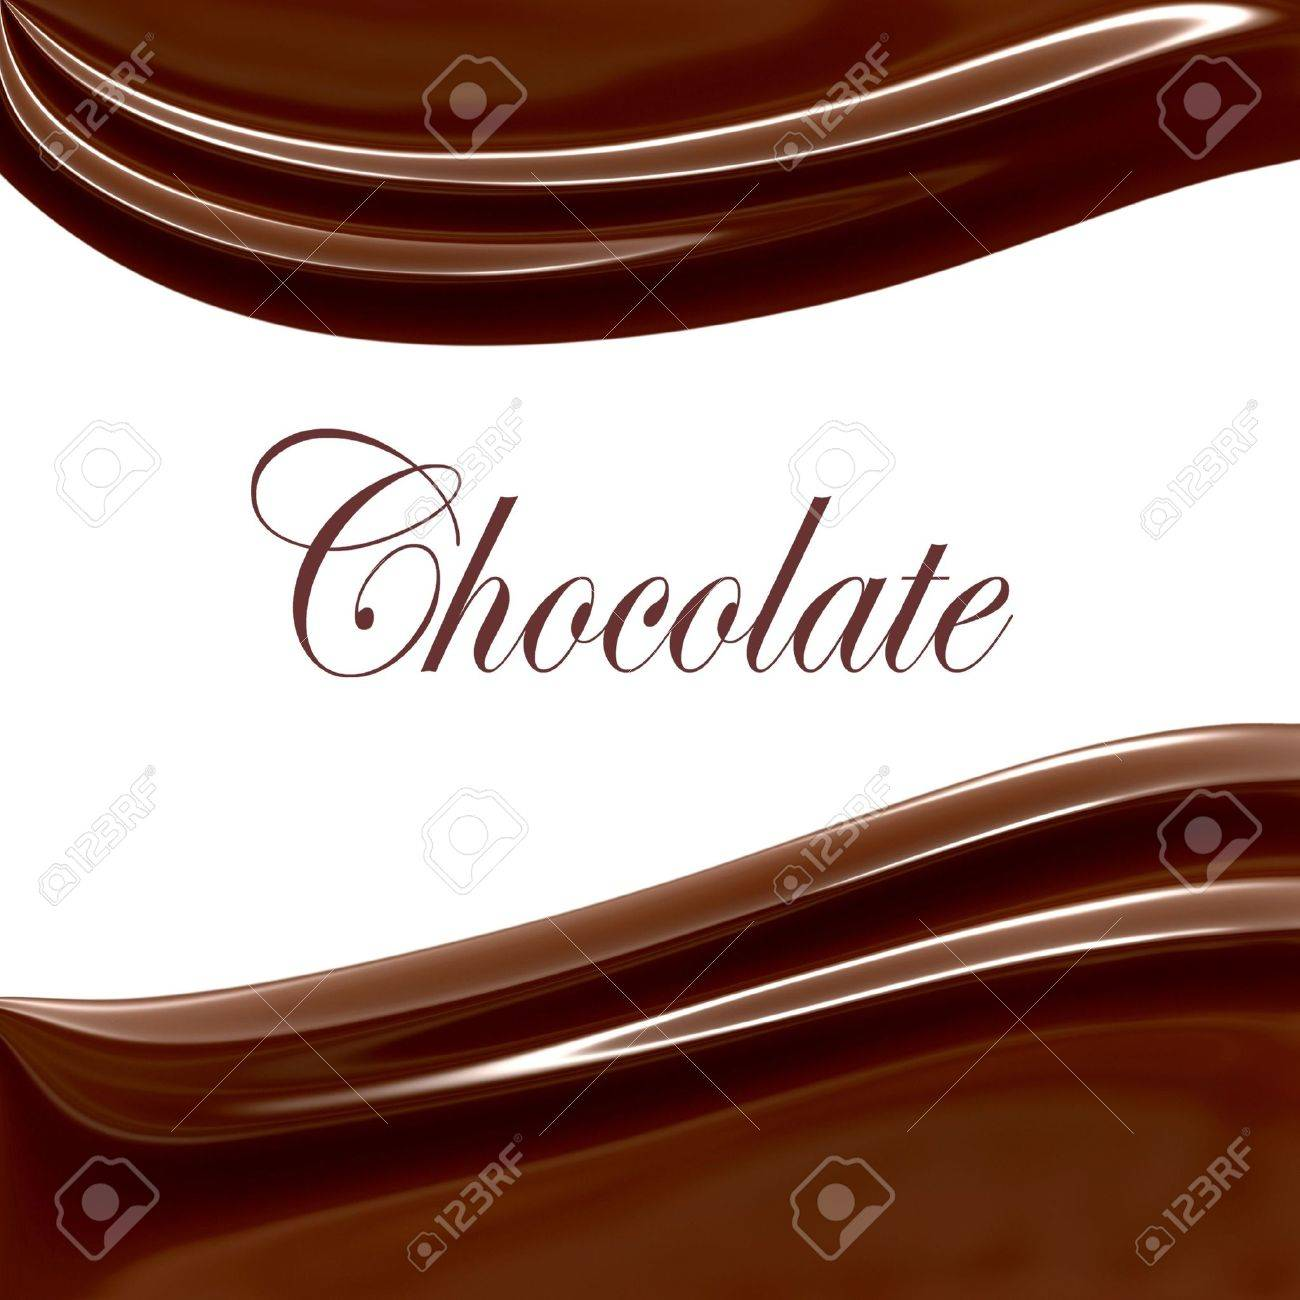 Chocolate Swirls On White Copy Space Stock Photo - 5388069